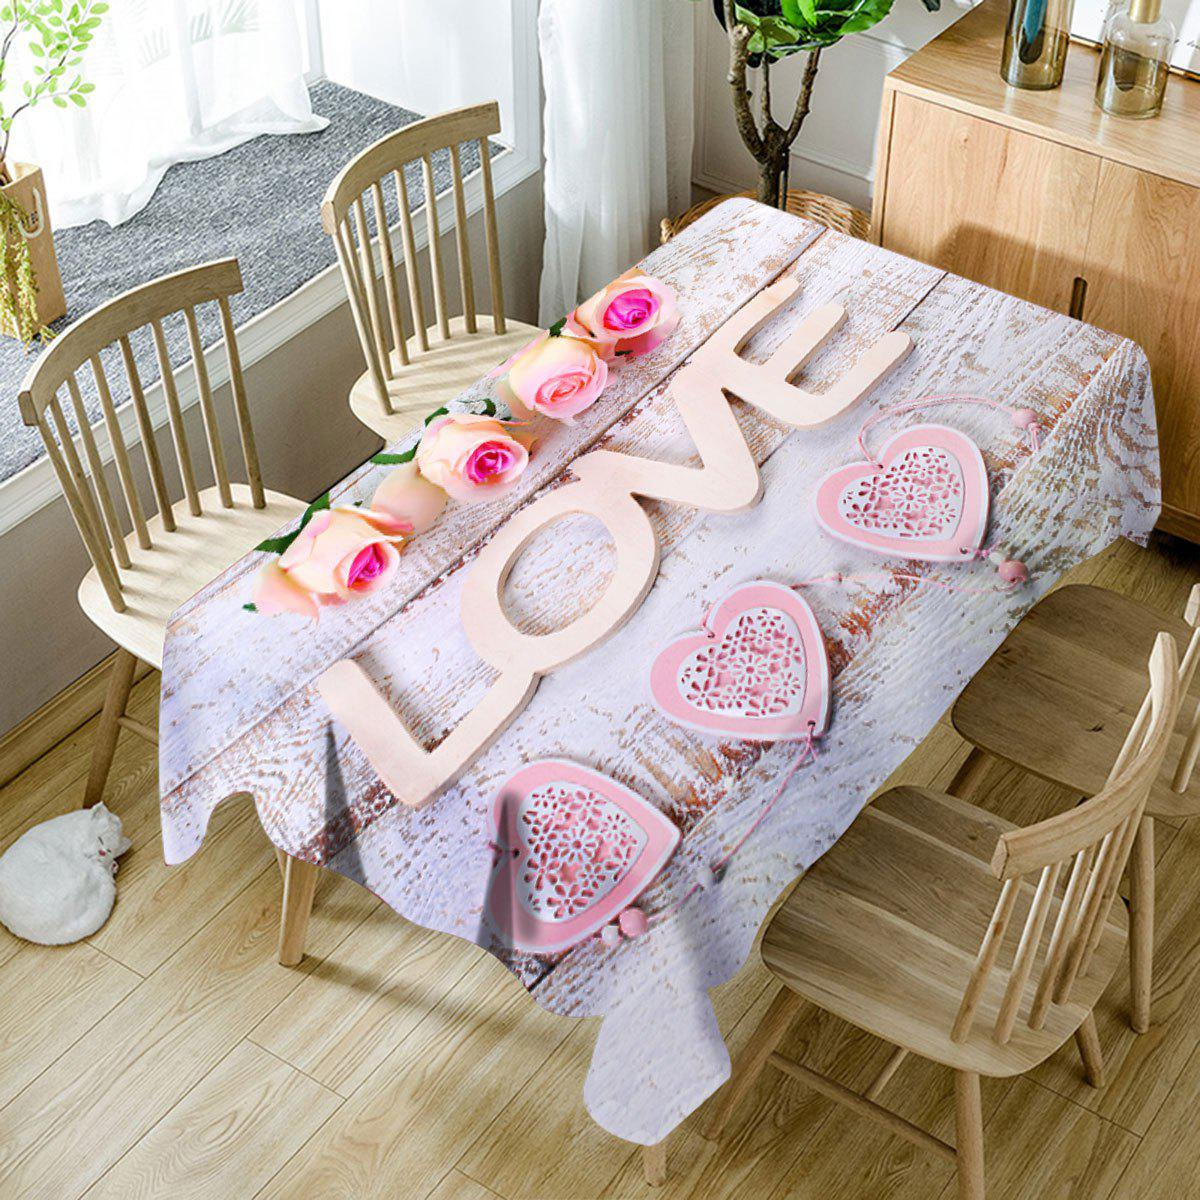 Chic Valentine's Day Roses Love Hearts Print Waterproof Table Cloth